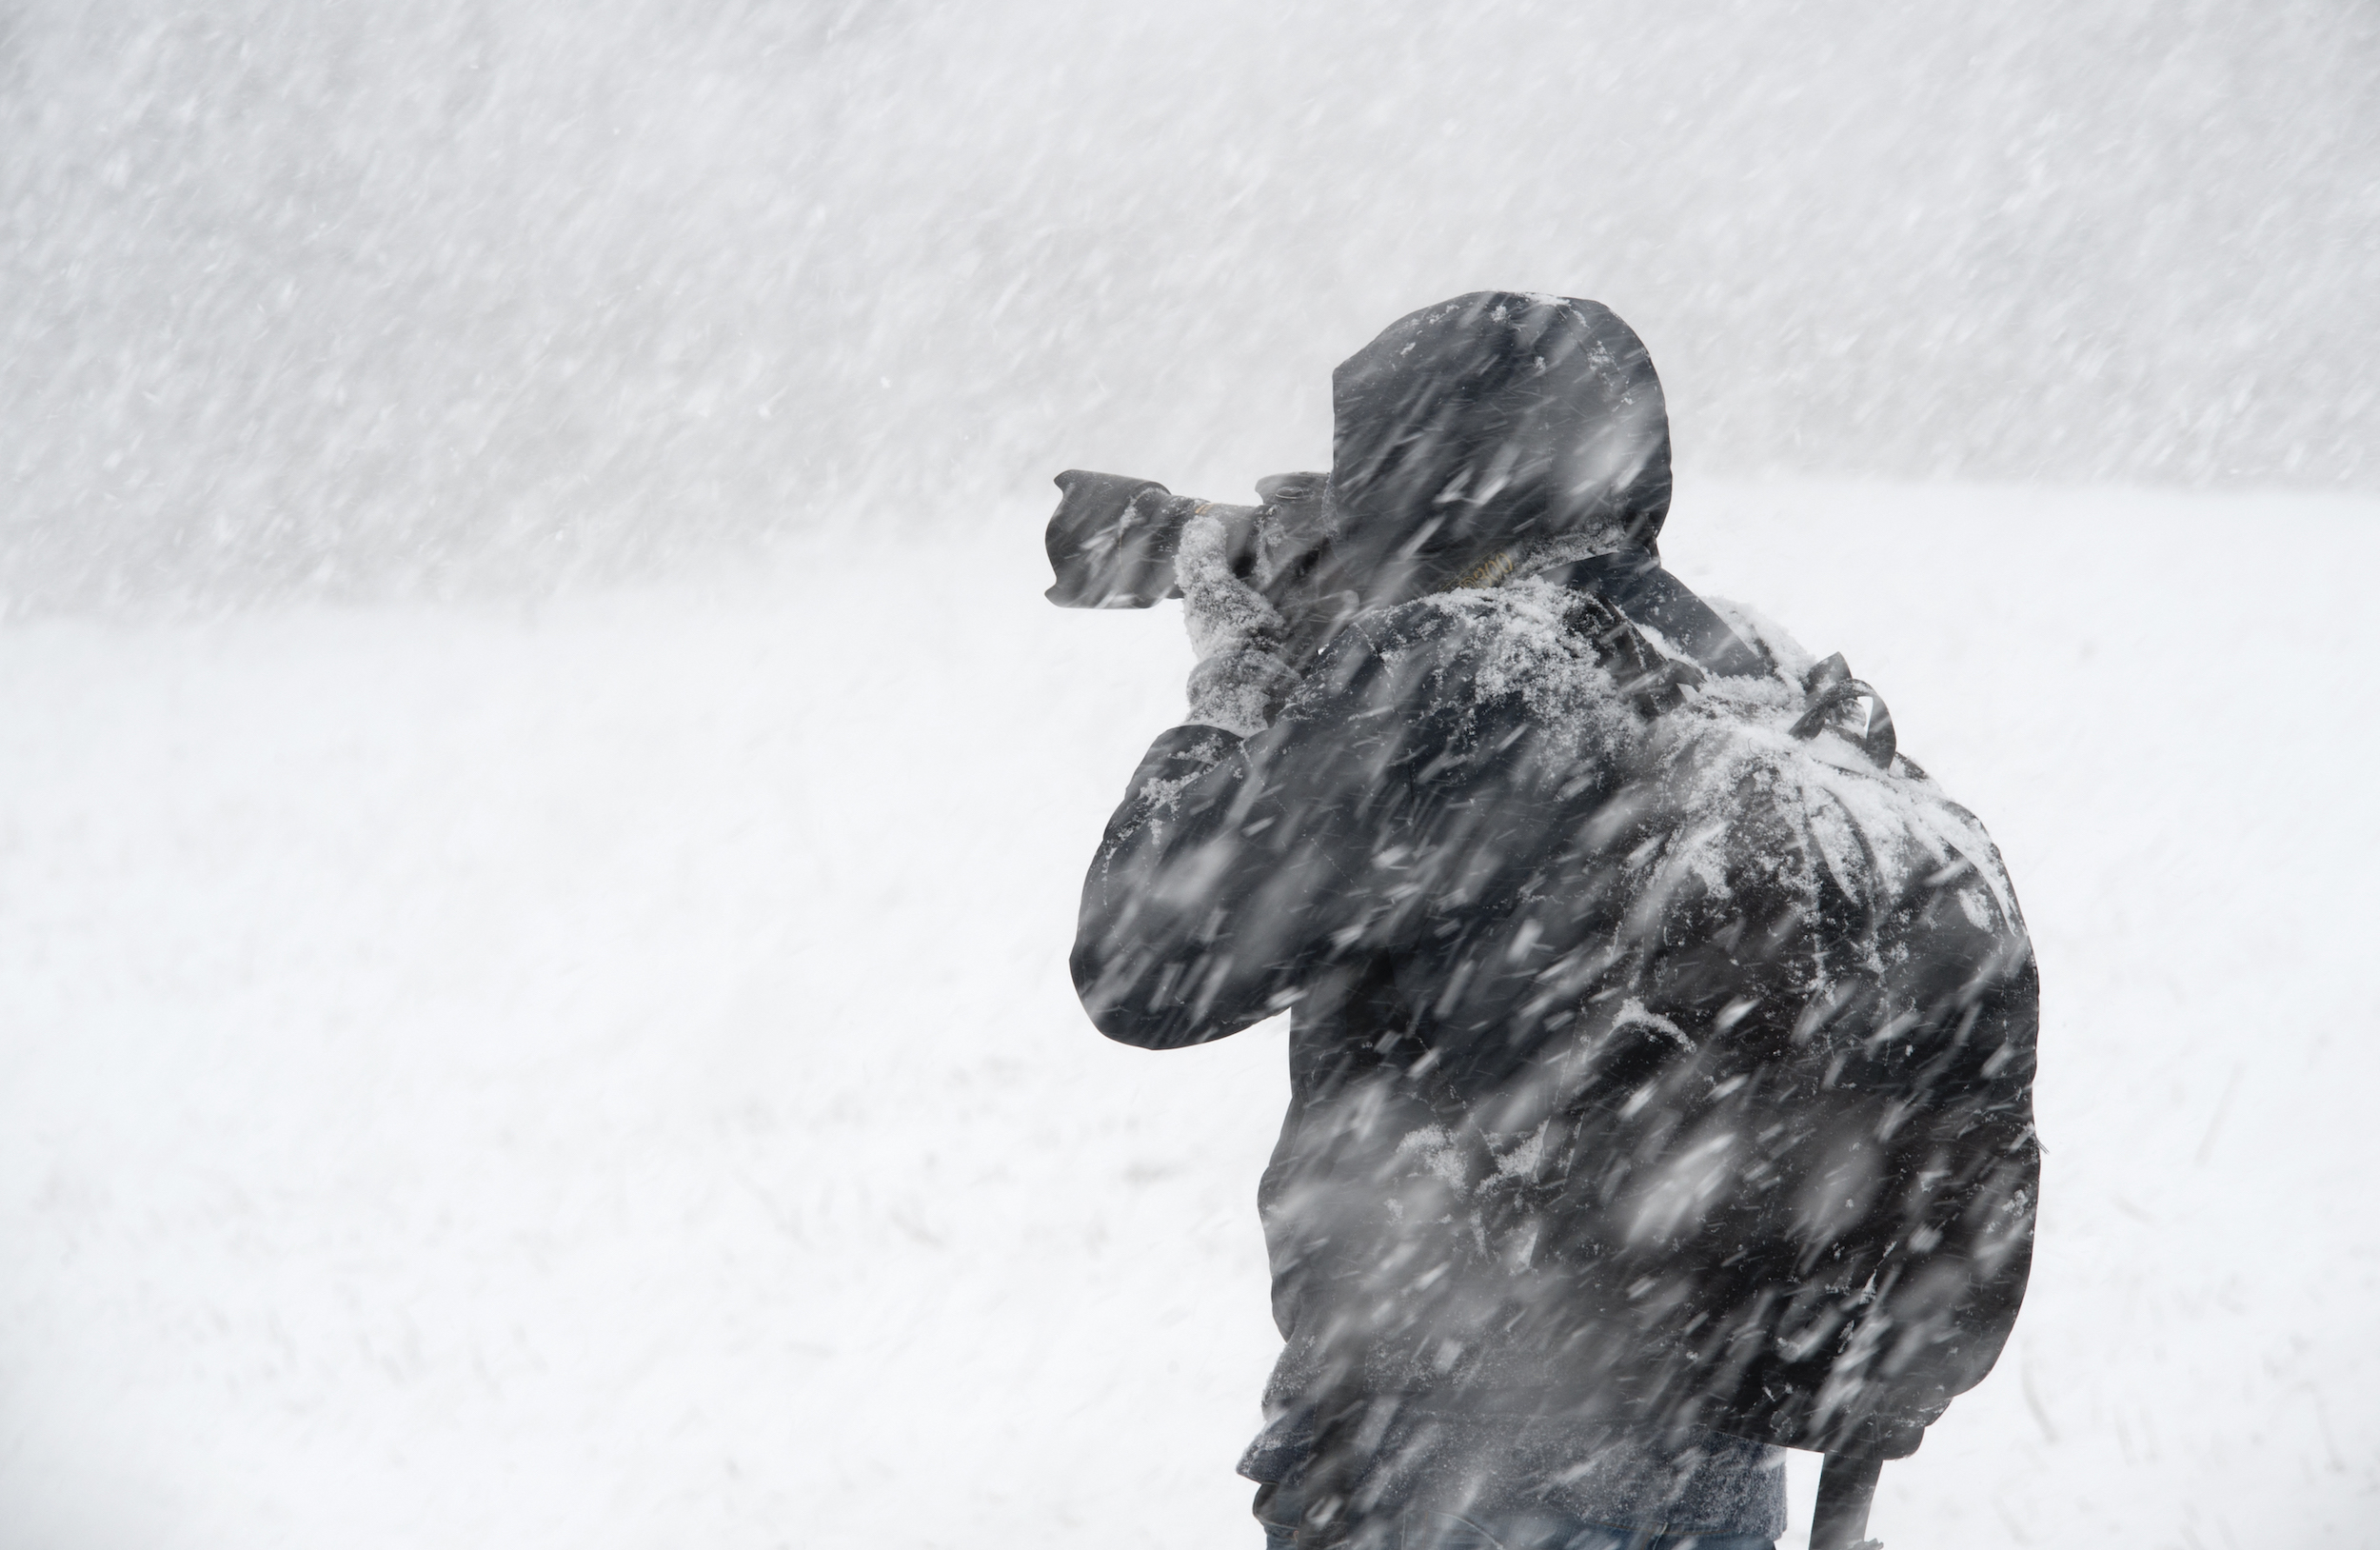 Photographer taking pictures in snowy conditions